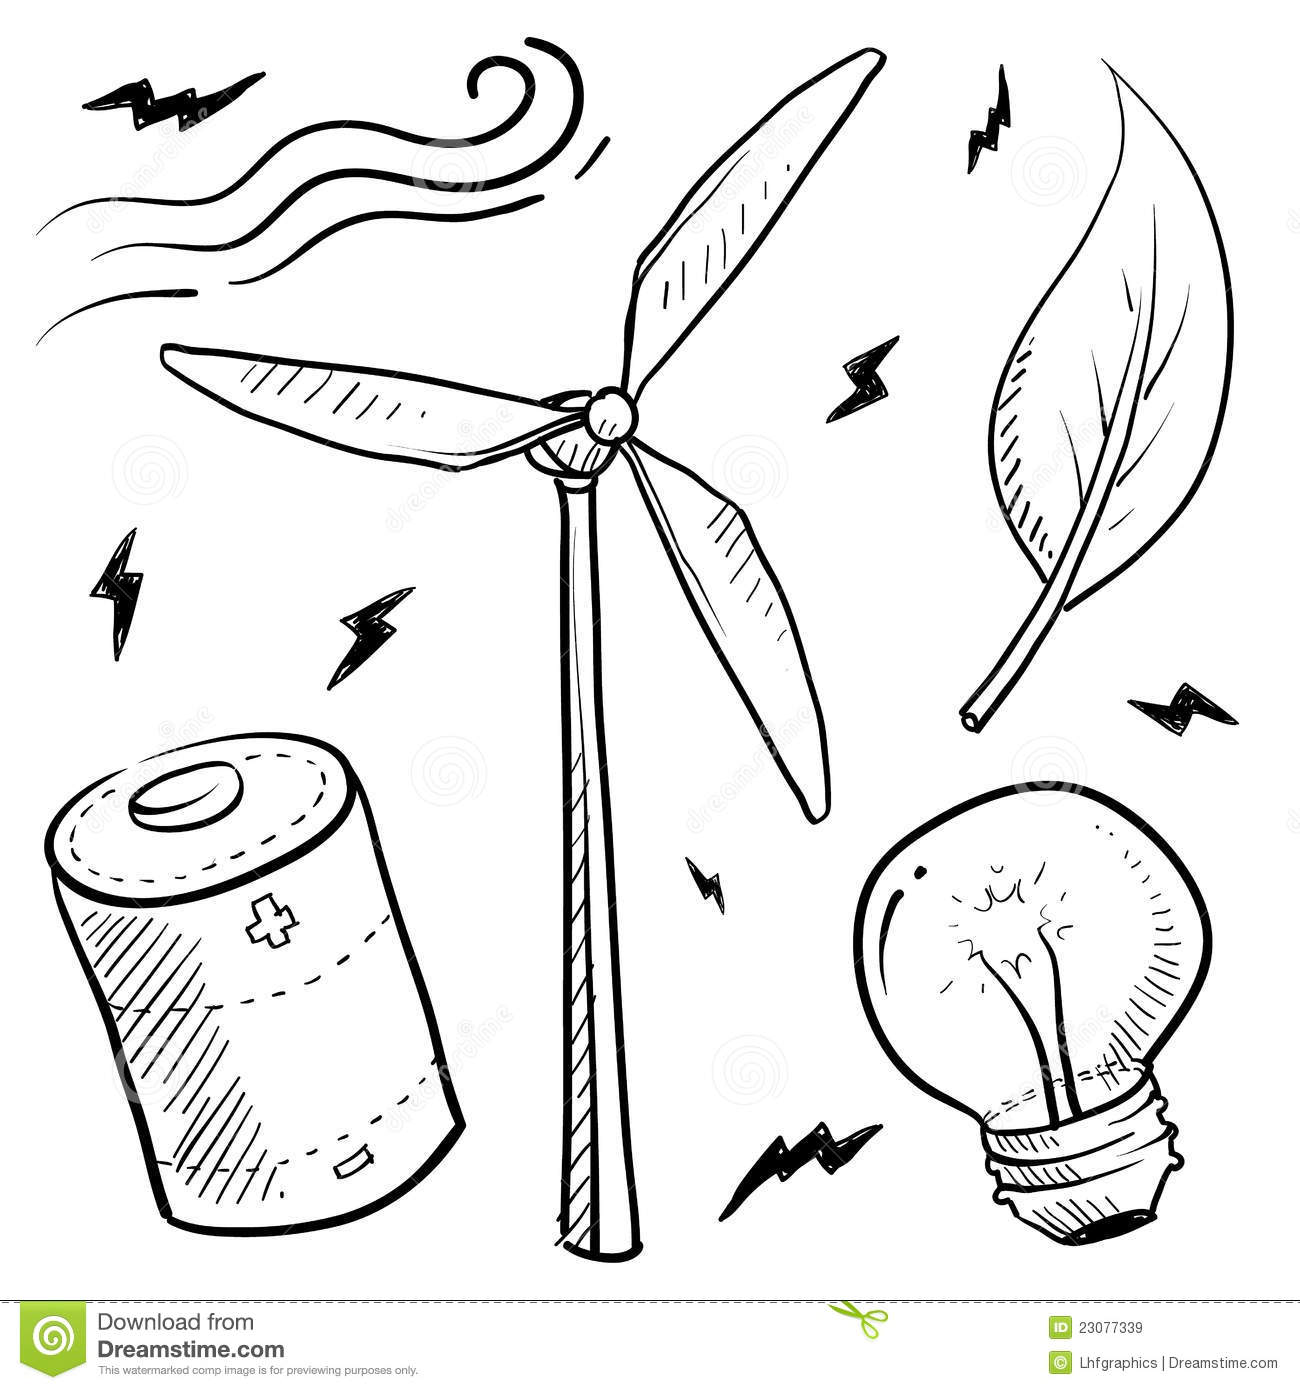 Wind Energy Objects Sketch Stock Vector Illustration Of